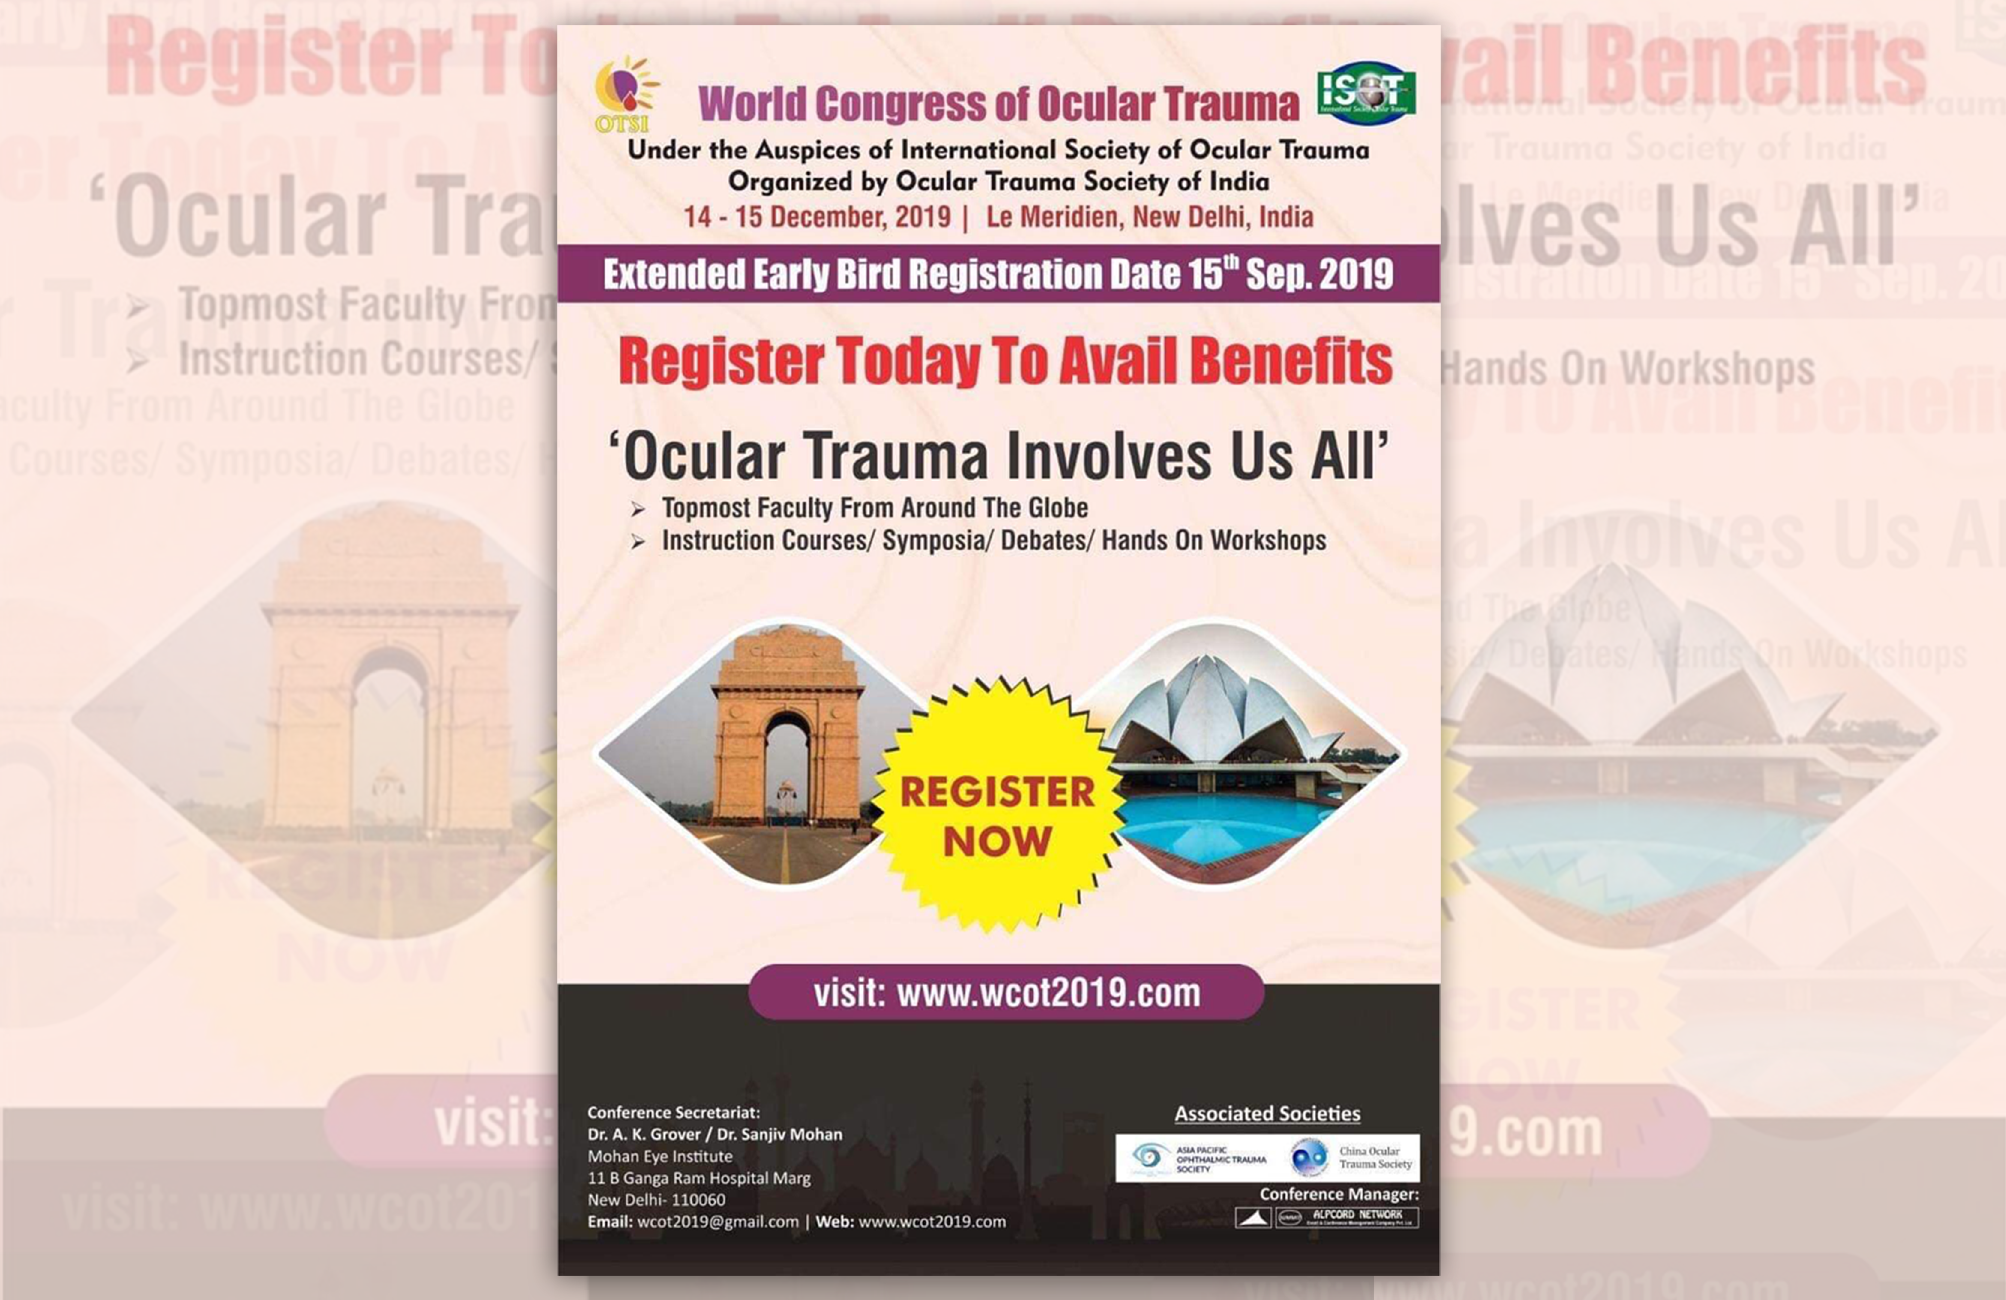 World Congress of Ocular Trauma